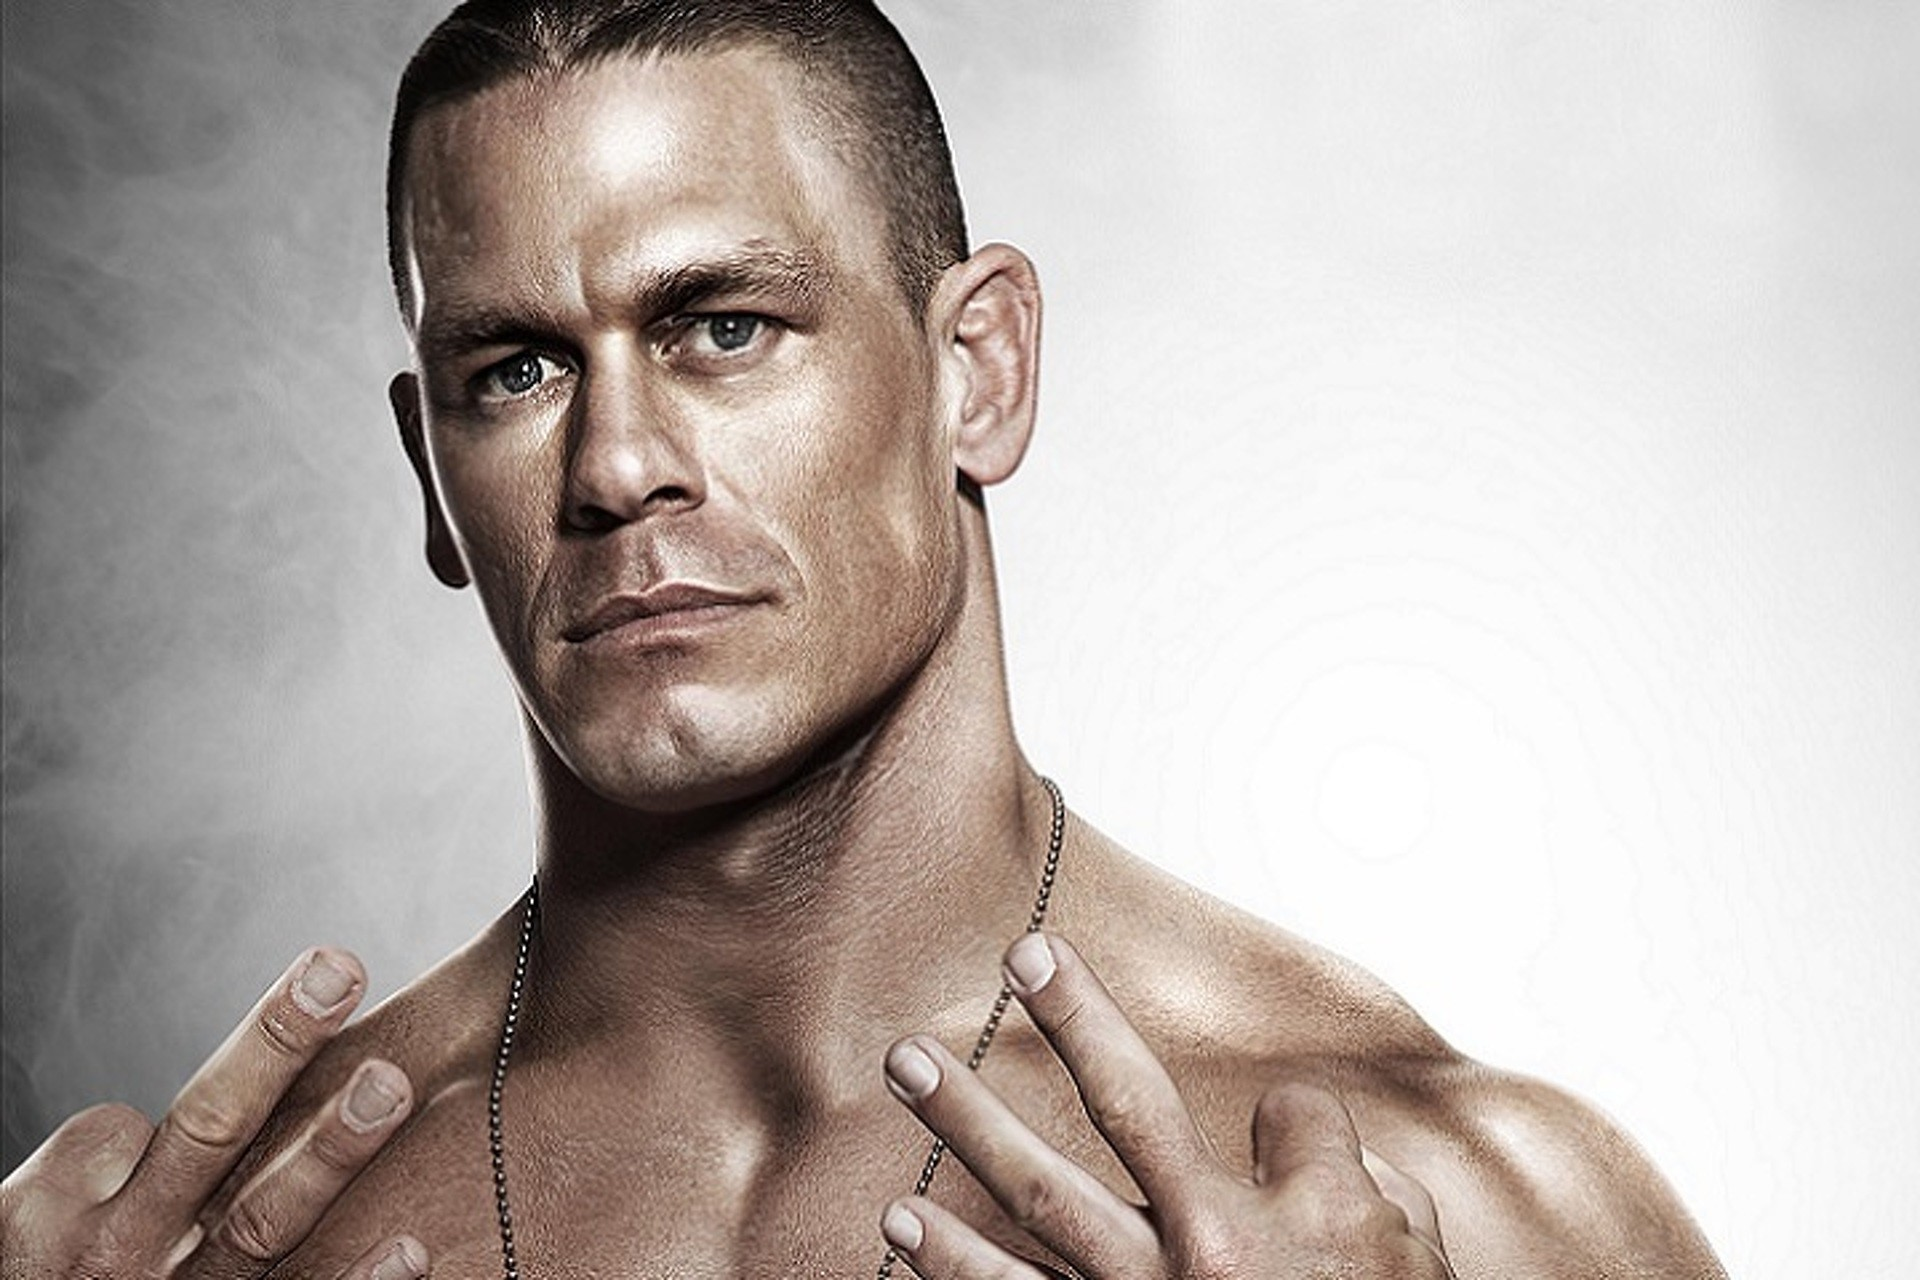 John Cena is a Muscle Car Muscle Man product 2015-07-09 08:00:43